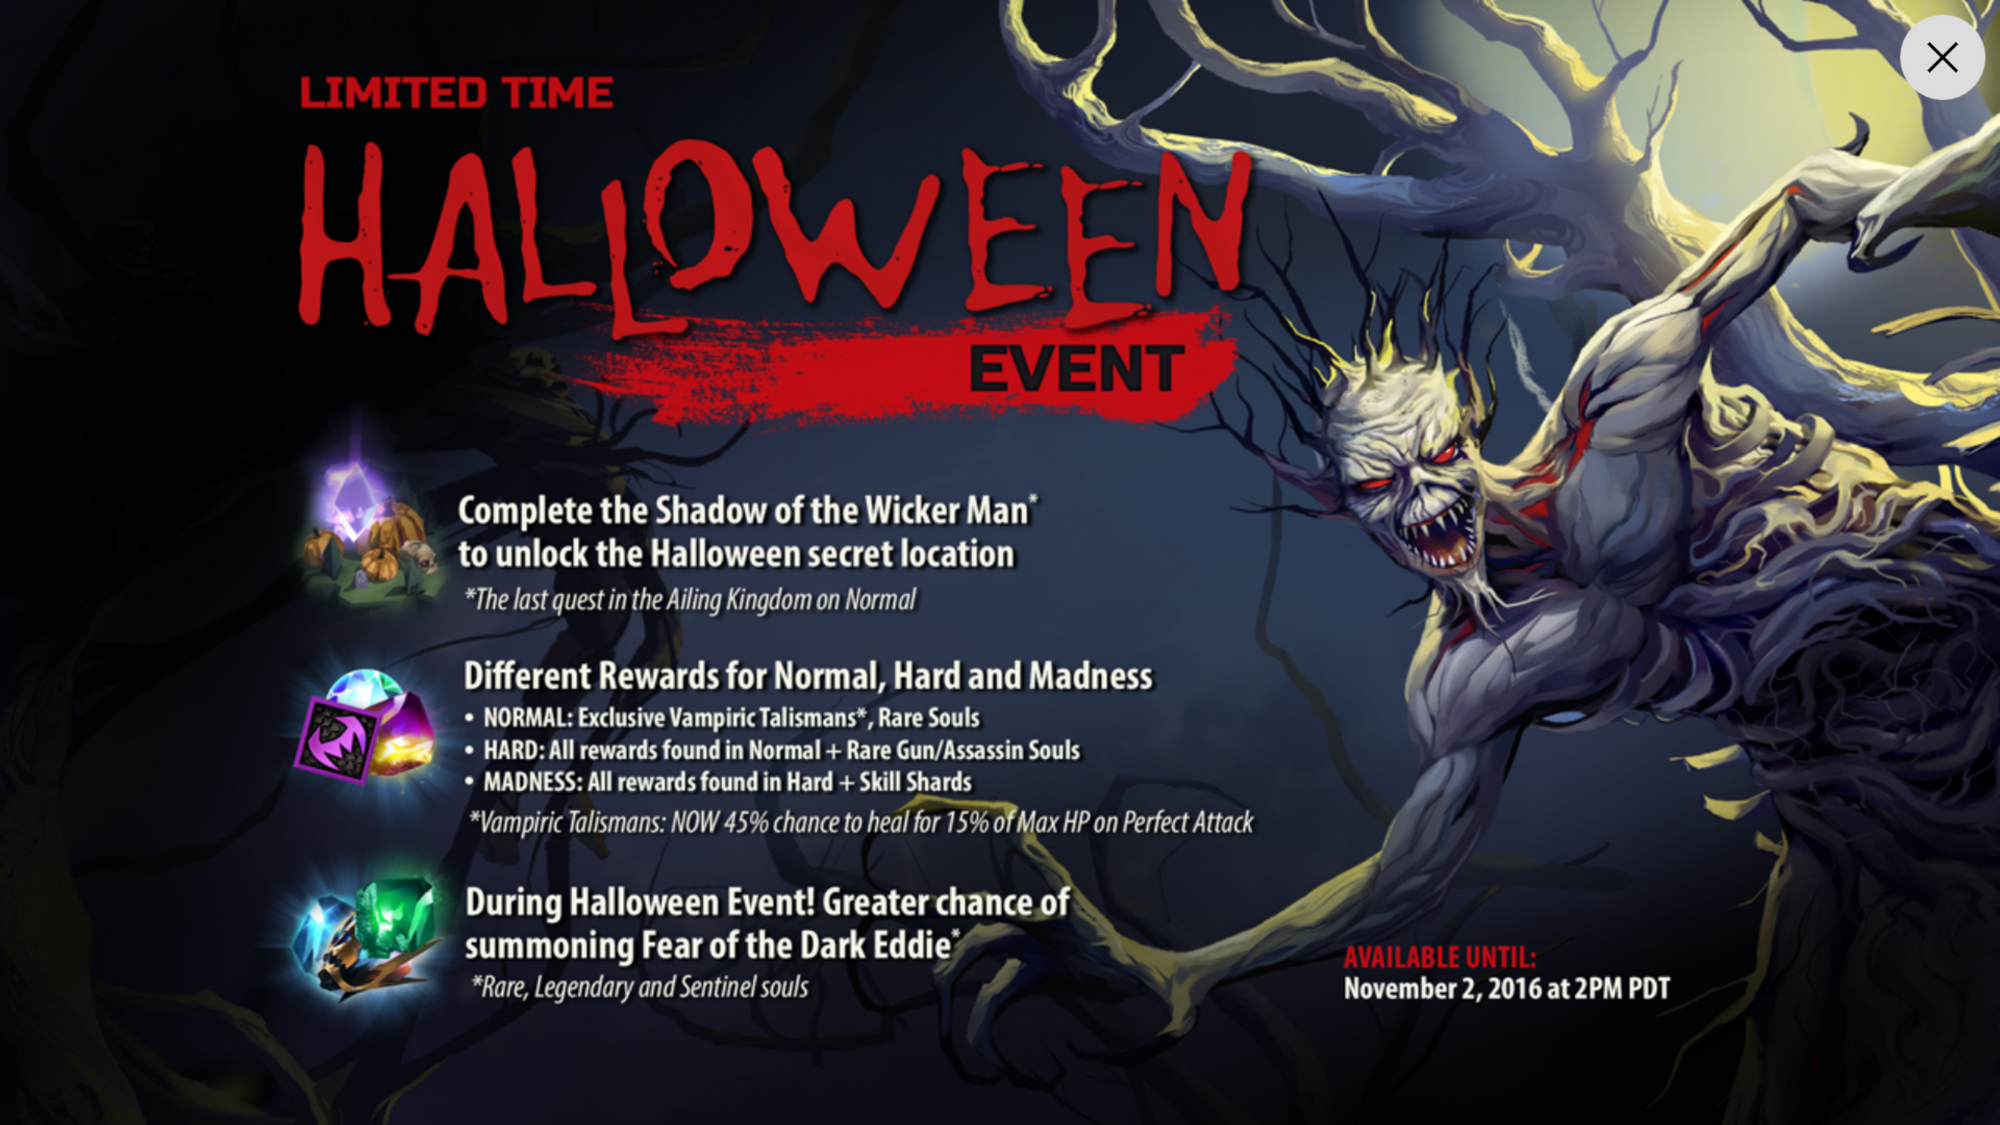 image - halloween event | iron maiden: legacy of the beast wiki